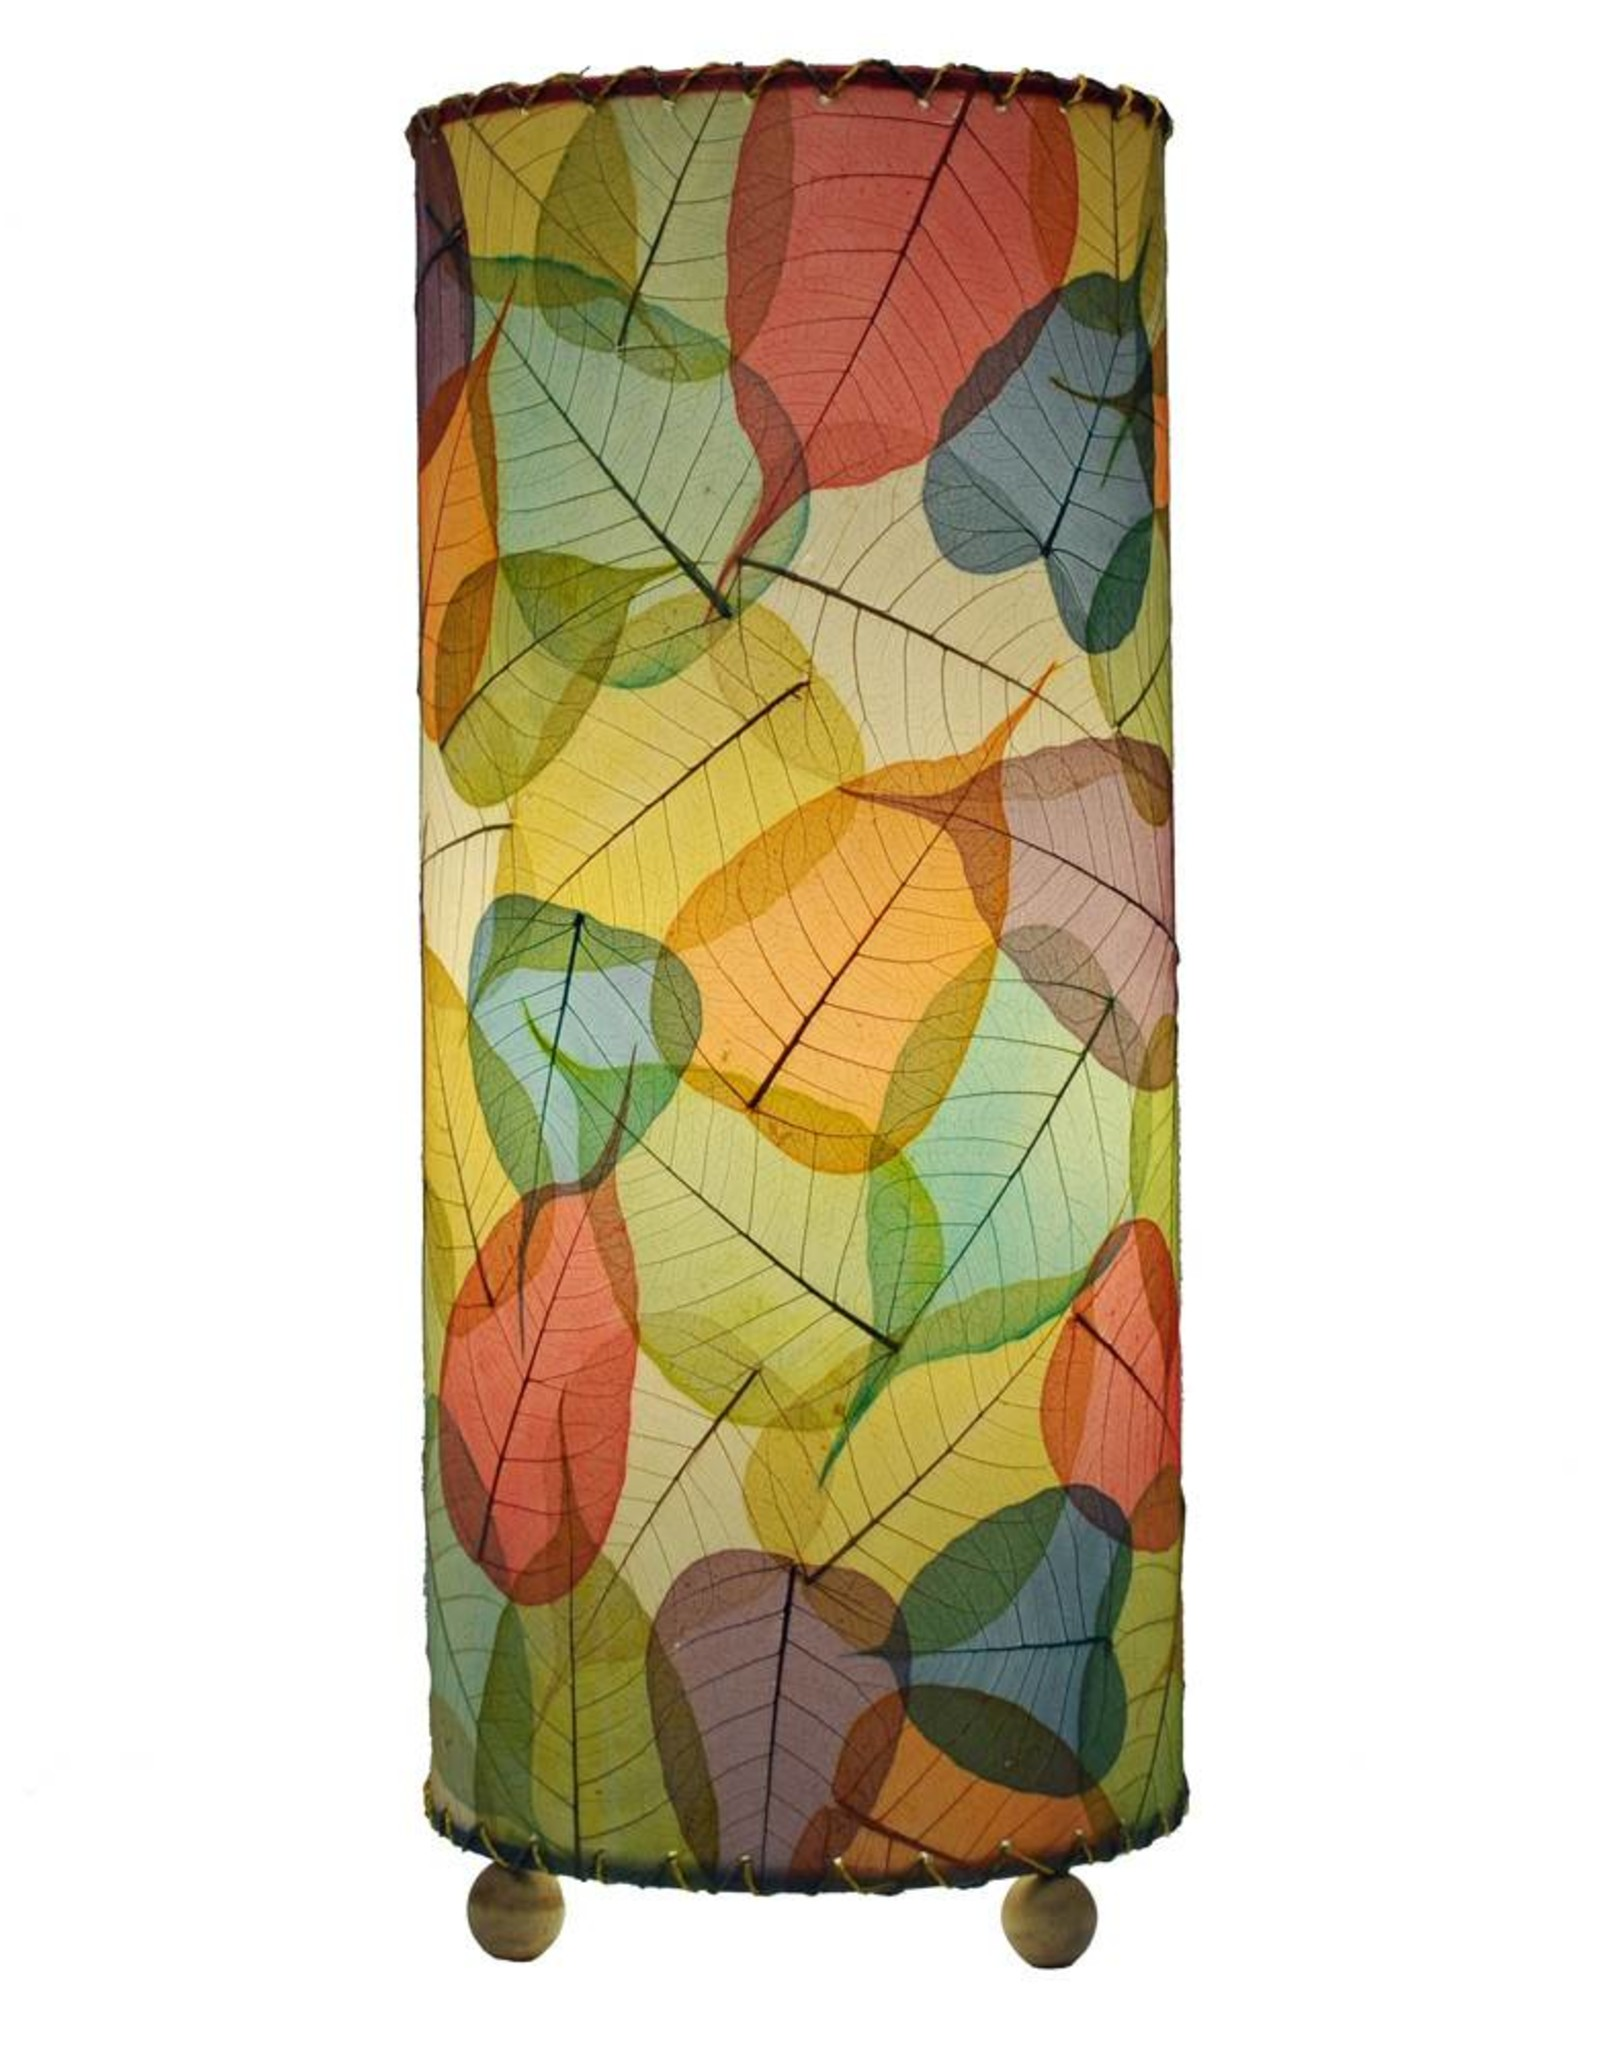 Eangee Banyan Table Lamp +6 Colors